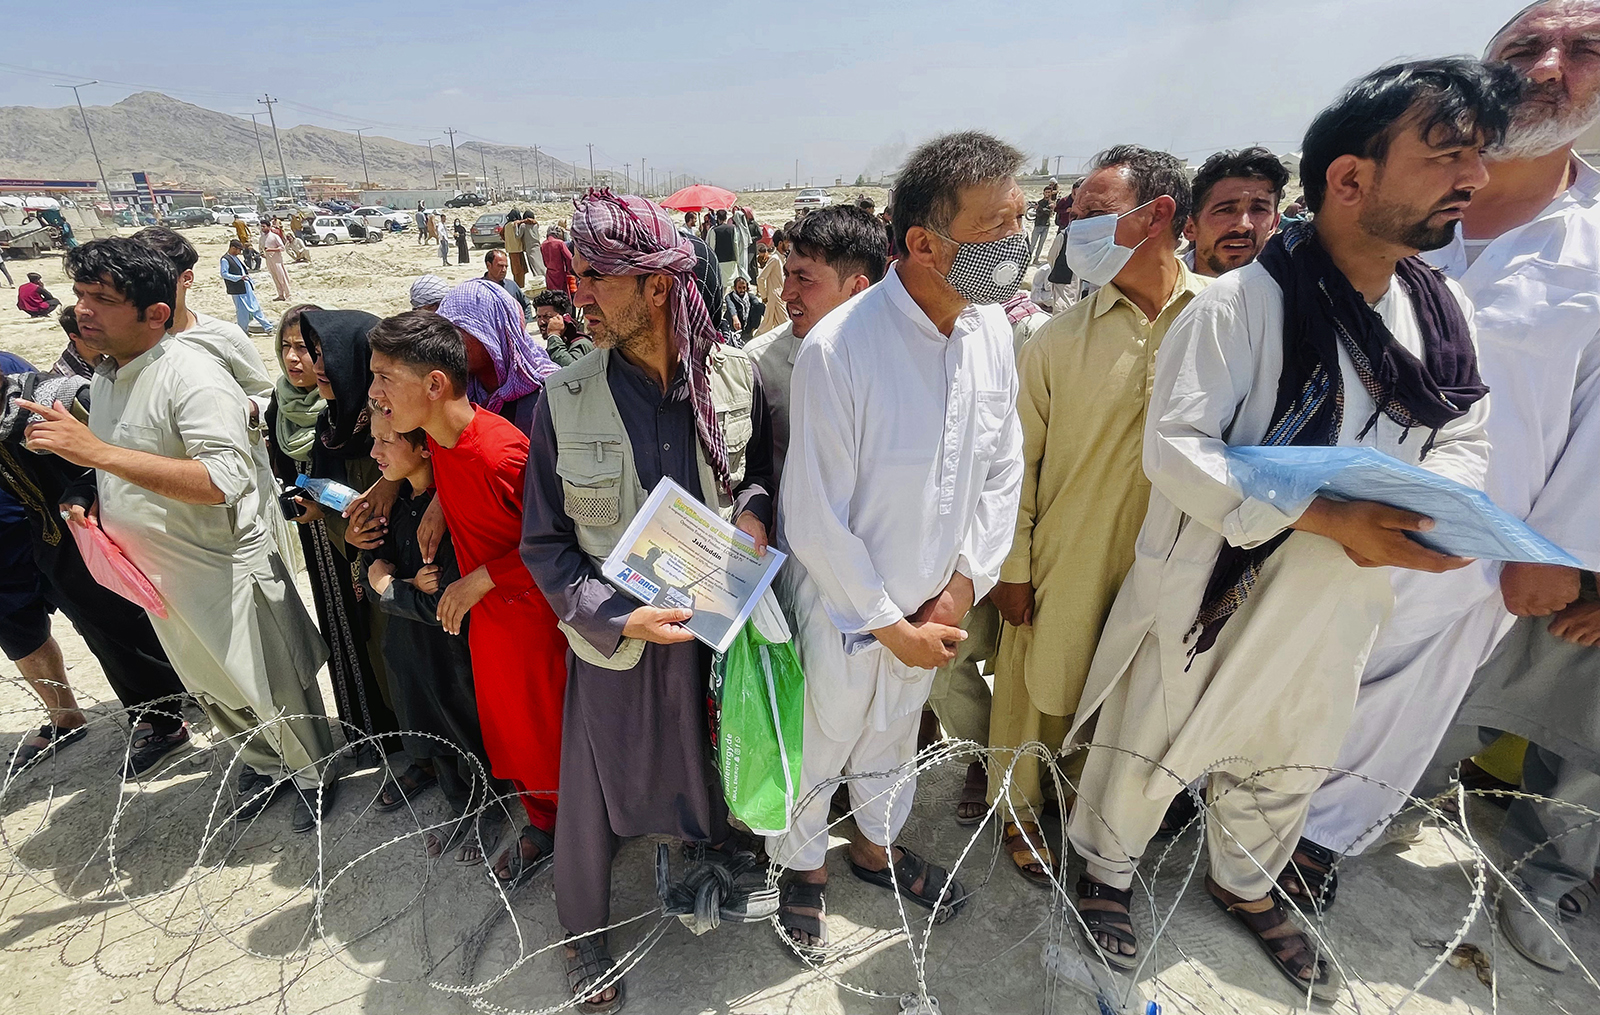 """A man holds a certificate acknowledging his work for Americans, center, as hundreds of people gather outside the international airport in Kabul, Afghanistan, Aug. 17, 2021. The Taliban declared an """"amnesty"""" across Afghanistan and urged women to join their government Tuesday, seeking to convince a wary population that they have changed a day after deadly chaos gripped the main airport as desperate crowds tried to flee the country. (AP Photo)"""